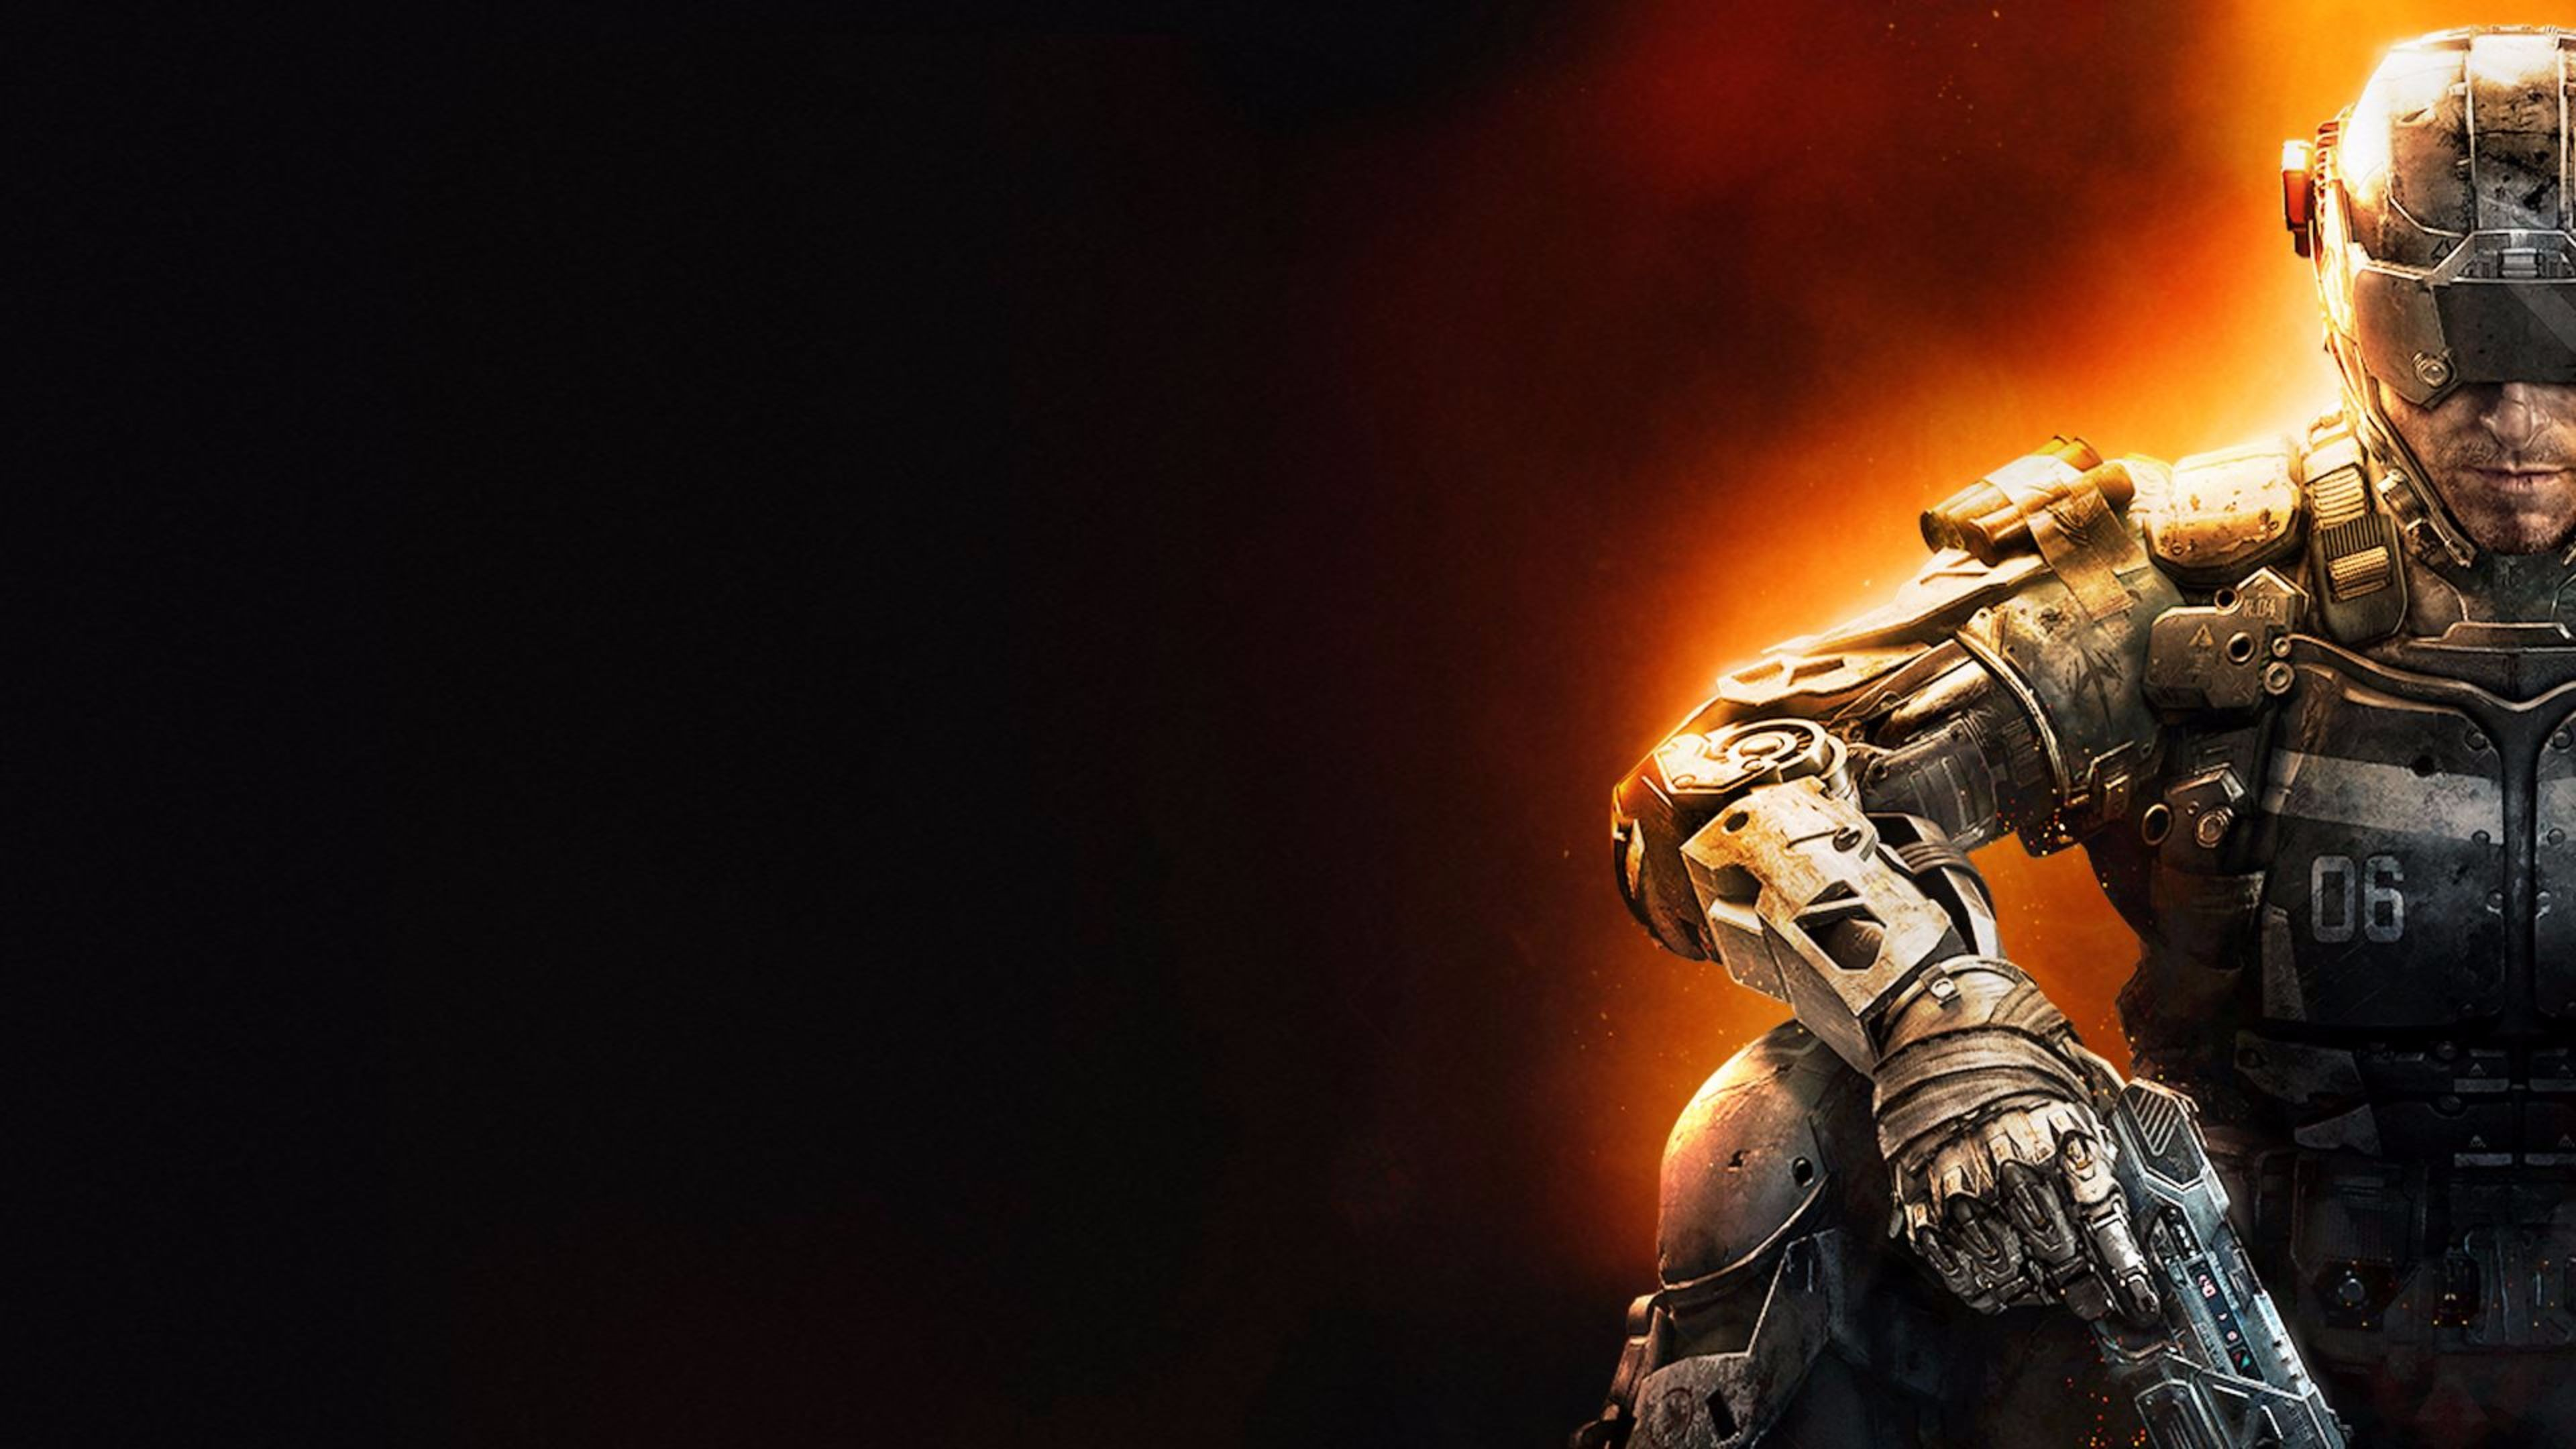 Call Of Duty Black Ops 3 Hd Wallpapers: Call Of Duty: Black Ops 3